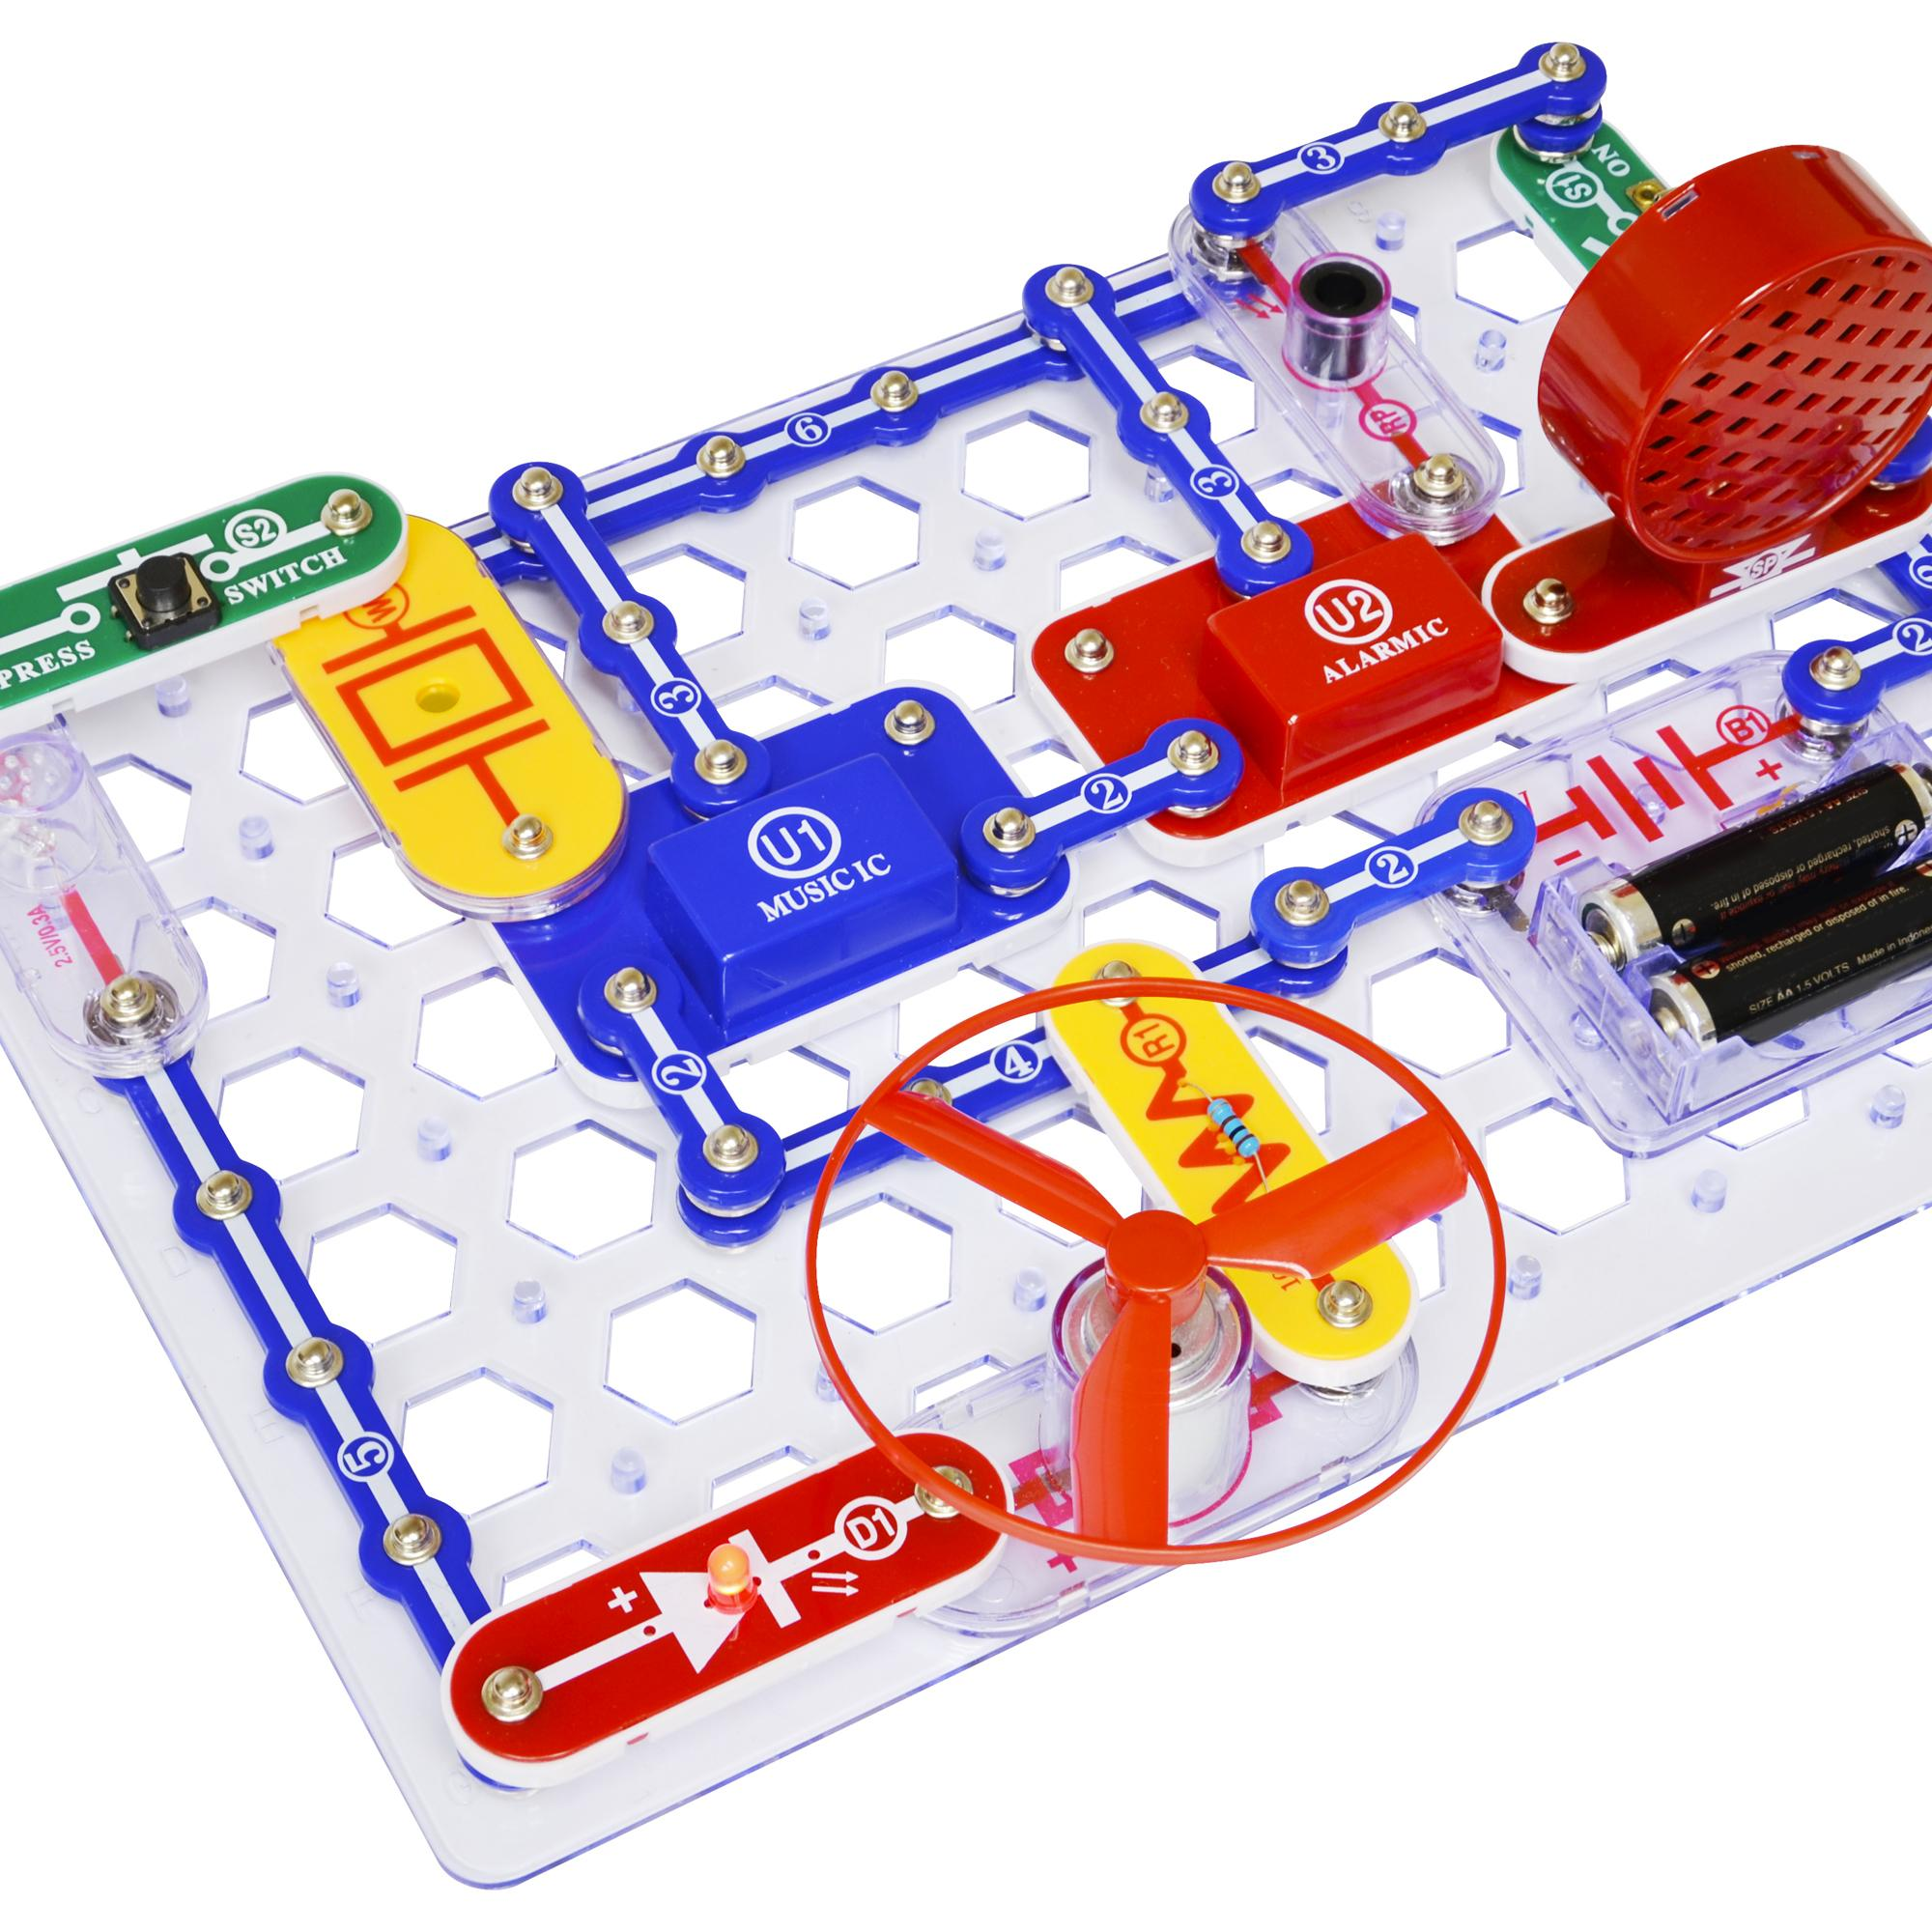 Buy Snap Circuits Jr SC 100 Kit line at Low Prices in India